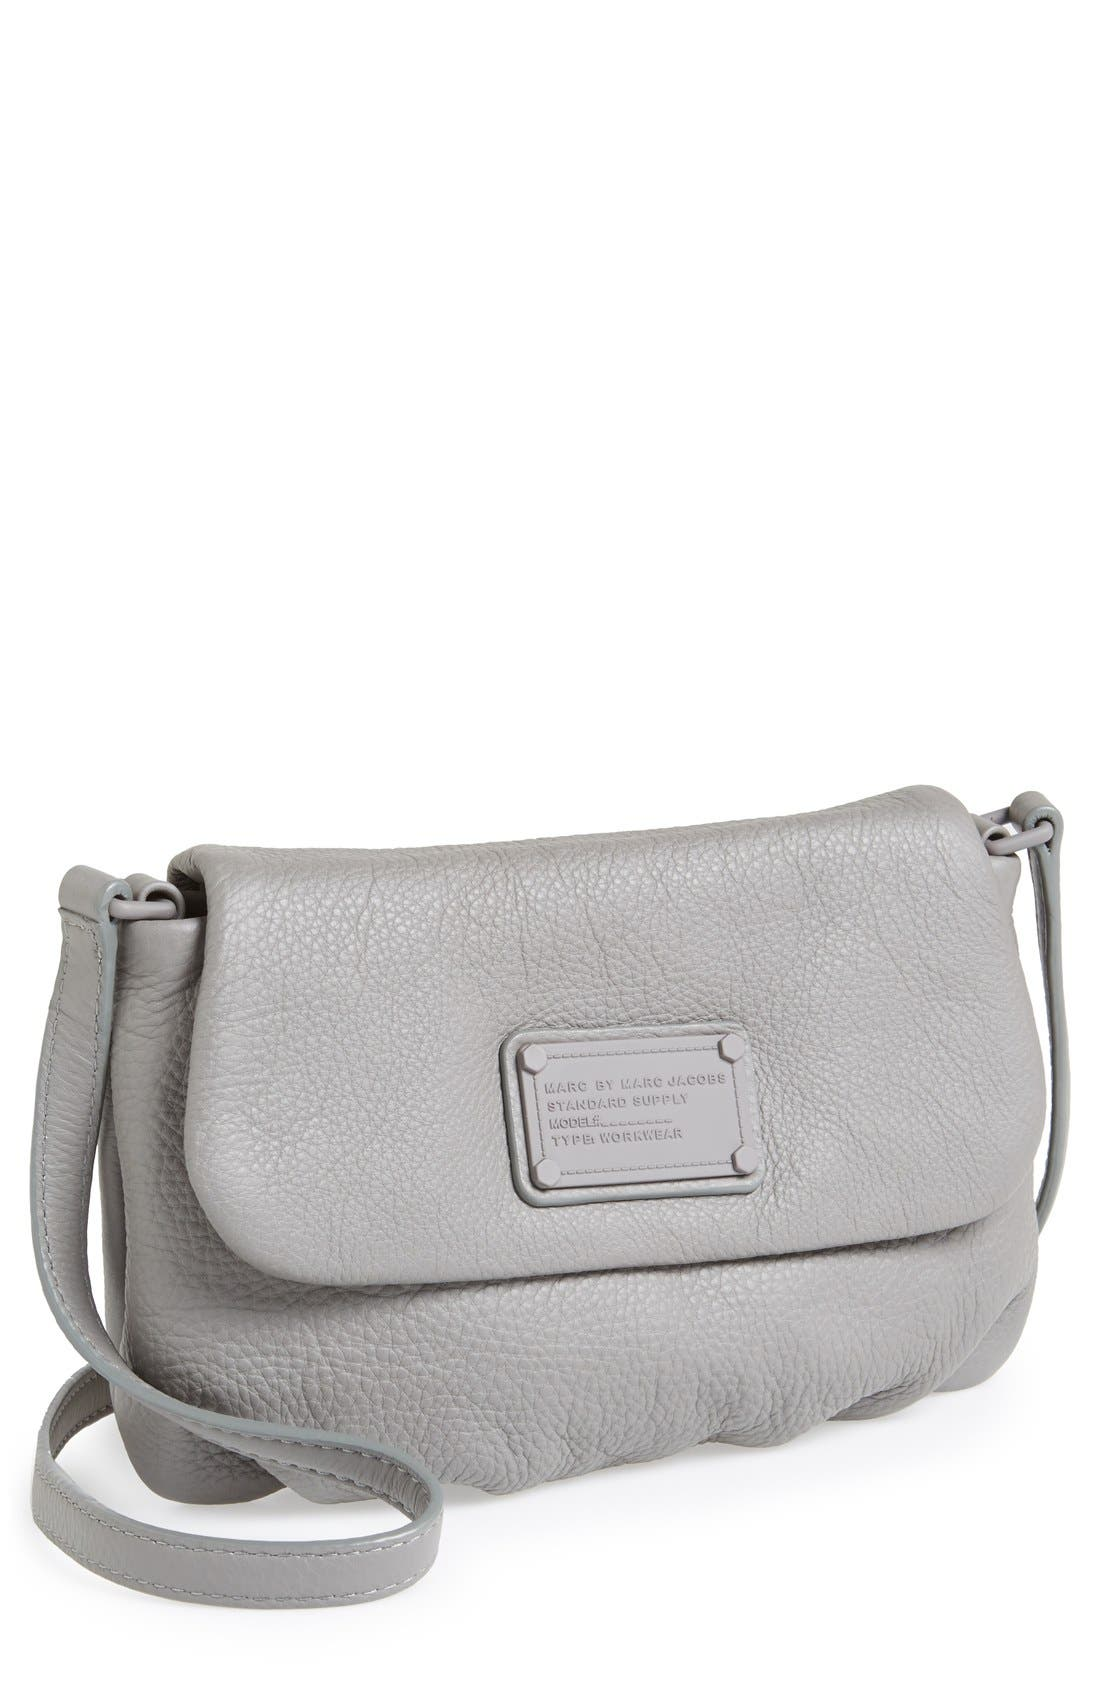 Main Image - MARC BY MARC JACOBS 'Electro Q - Flap Percy' Crossbody Bag